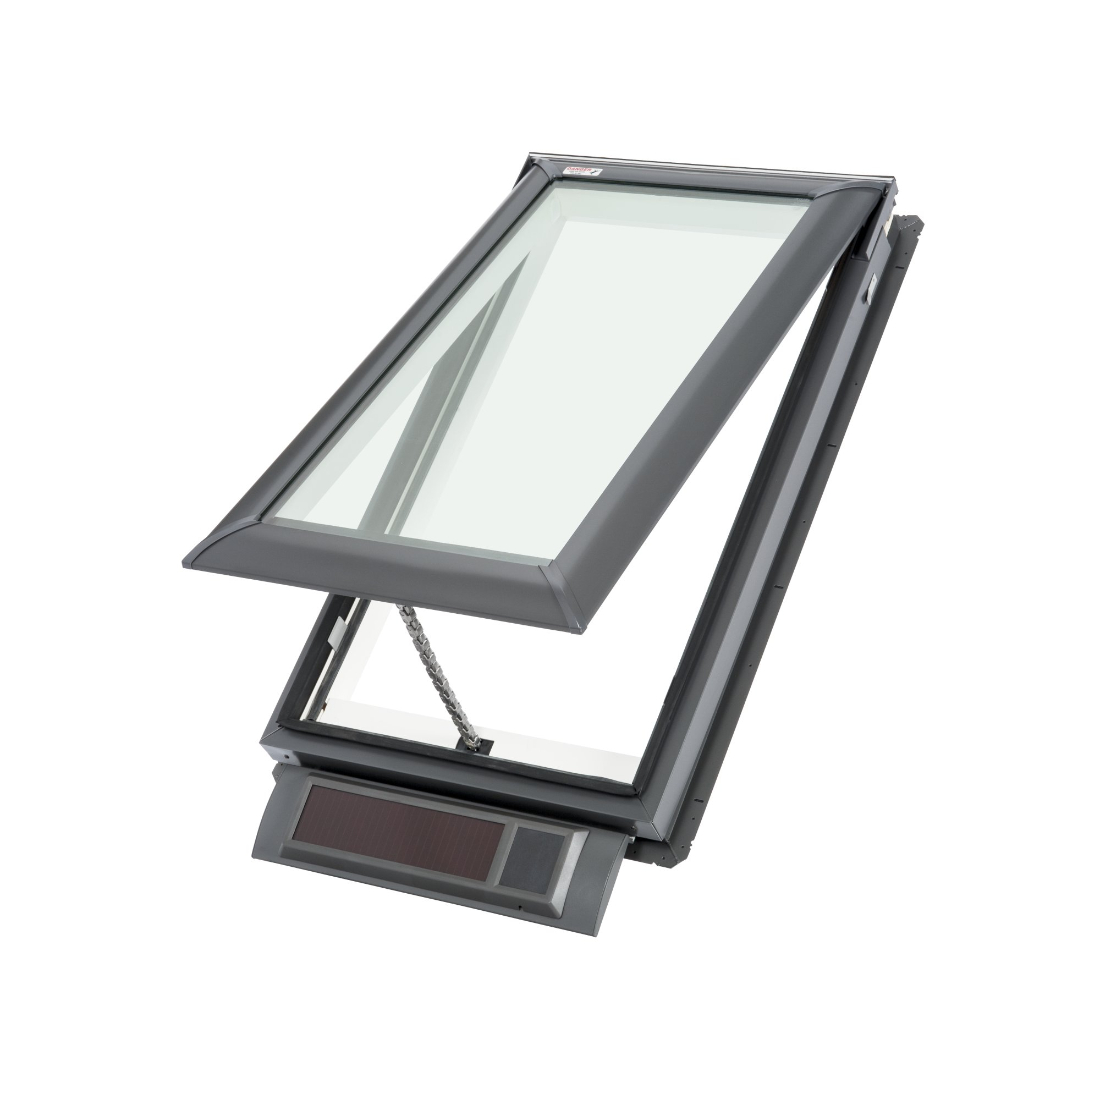 Solar Powered Skylight 1140 x 700mm